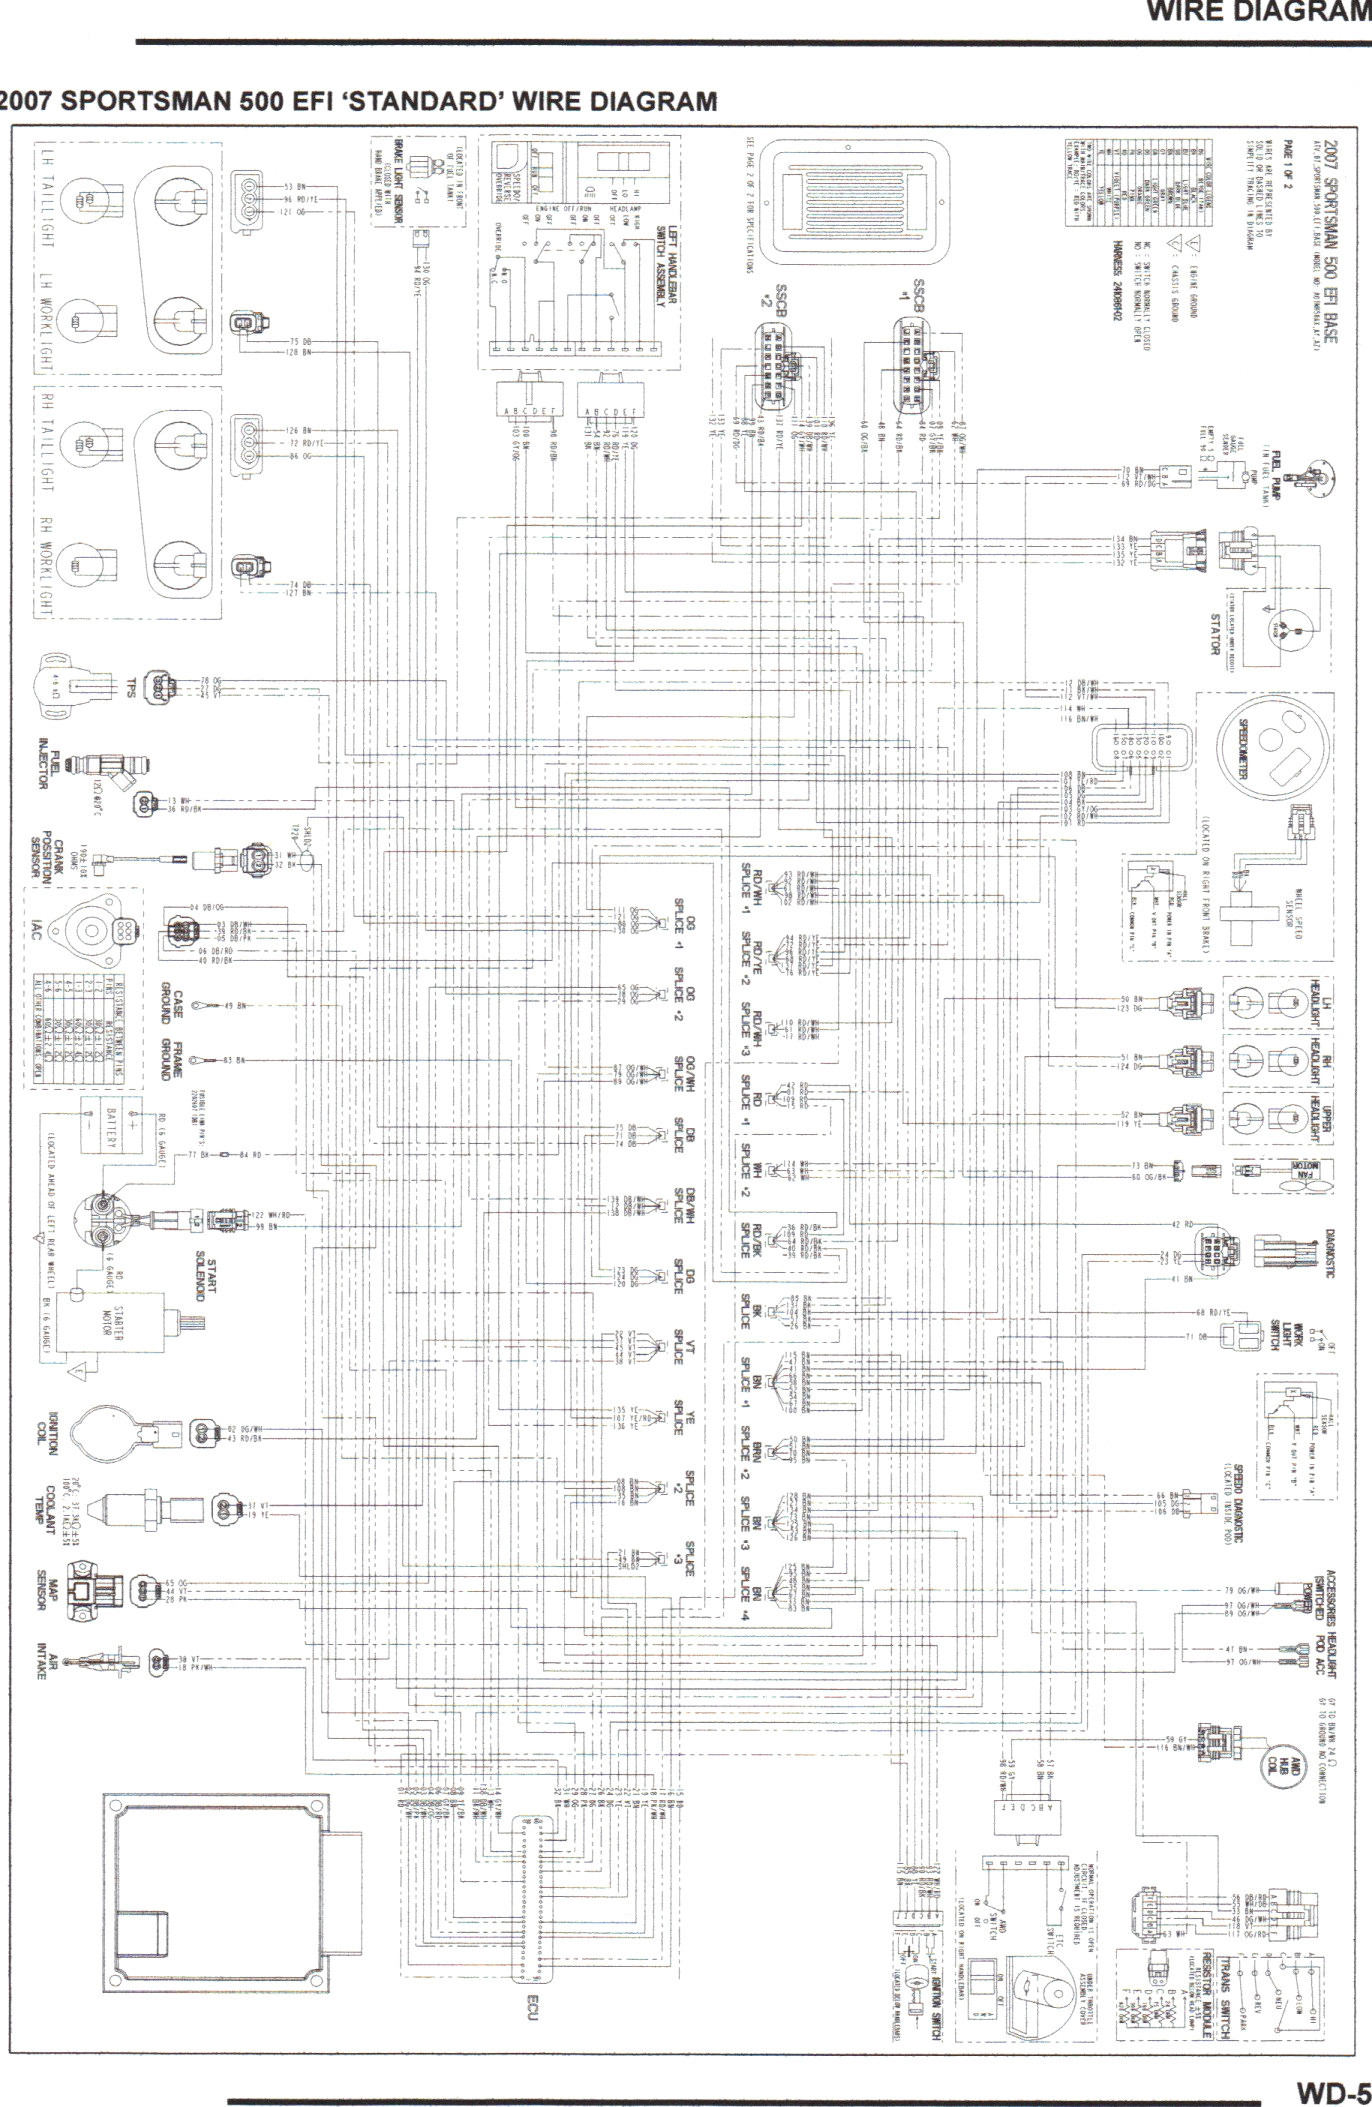 98 polaris sportsman 500 wiring diagram 2009 sportsman 500 wiring diagram #5